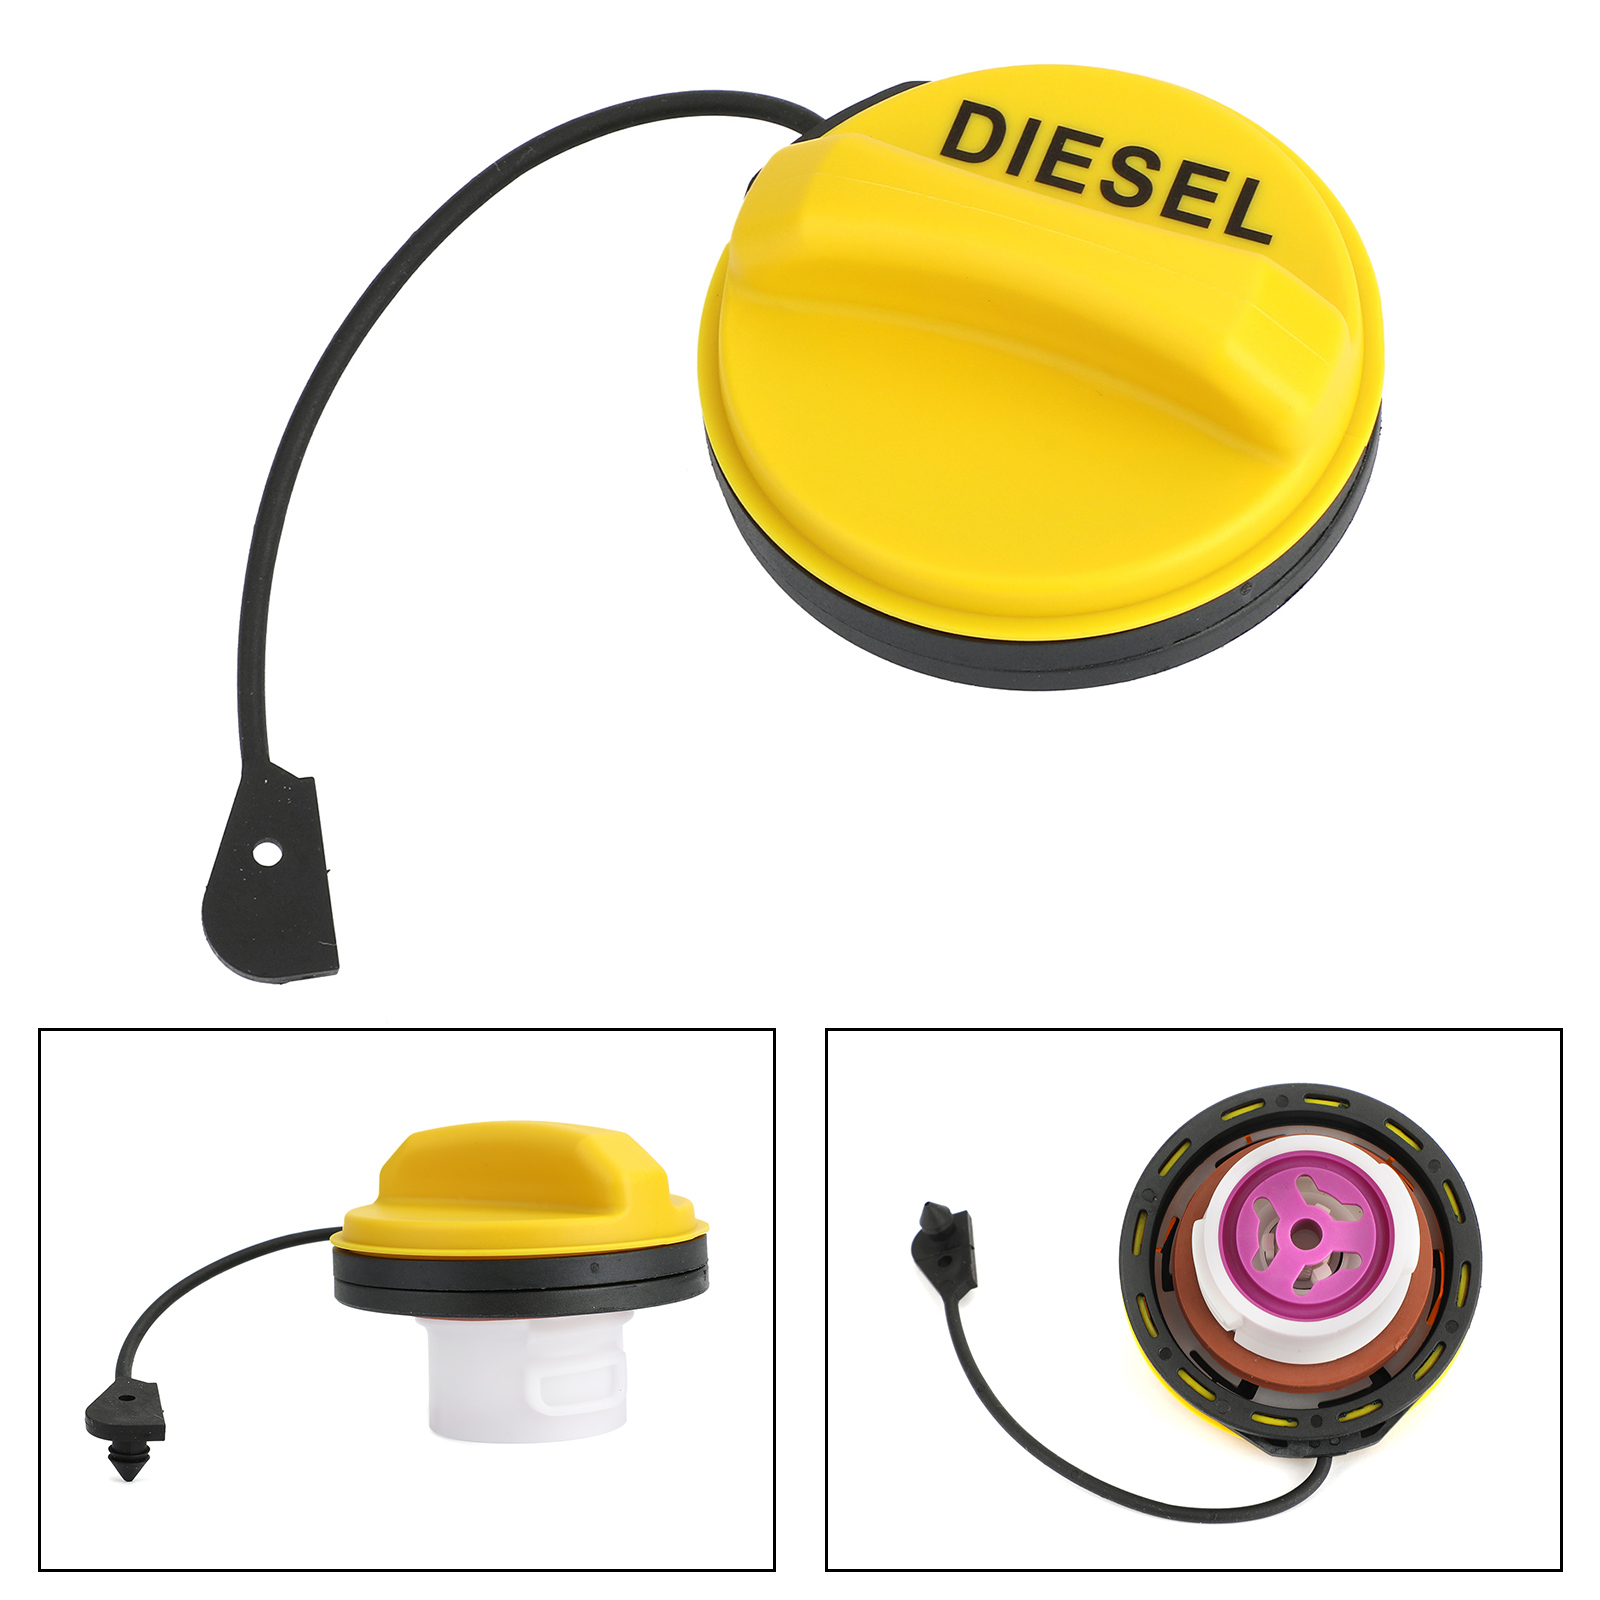 Areyourshop Fuel Cap Fits For Land Rover Discovery 3 LR3/4 LR4/5 LR053666 Car Exterior Accessories Parts